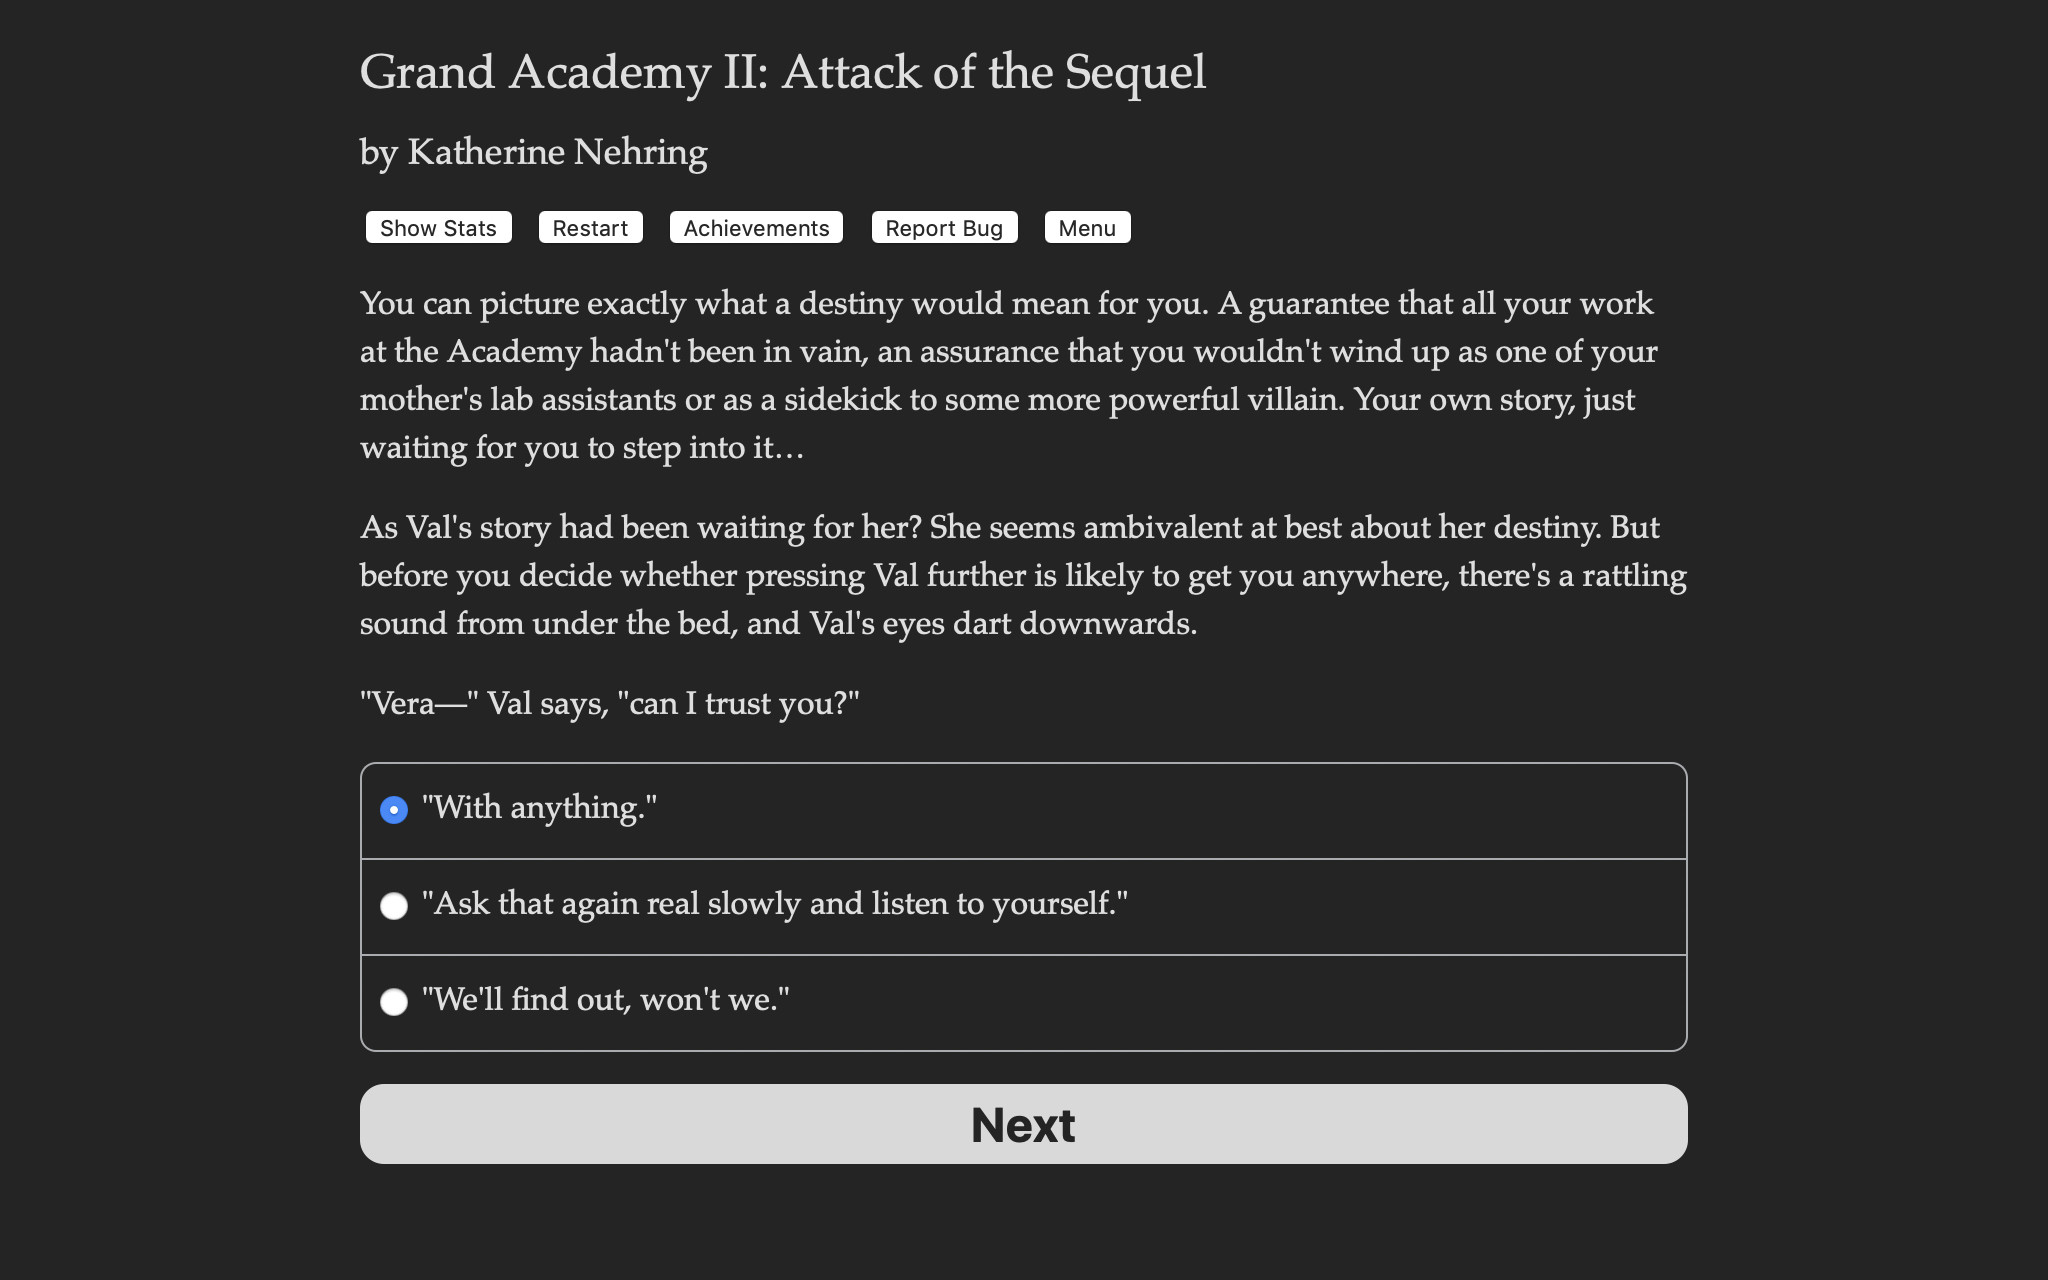 Grand Academy II: Attack of the Sequel screenshot